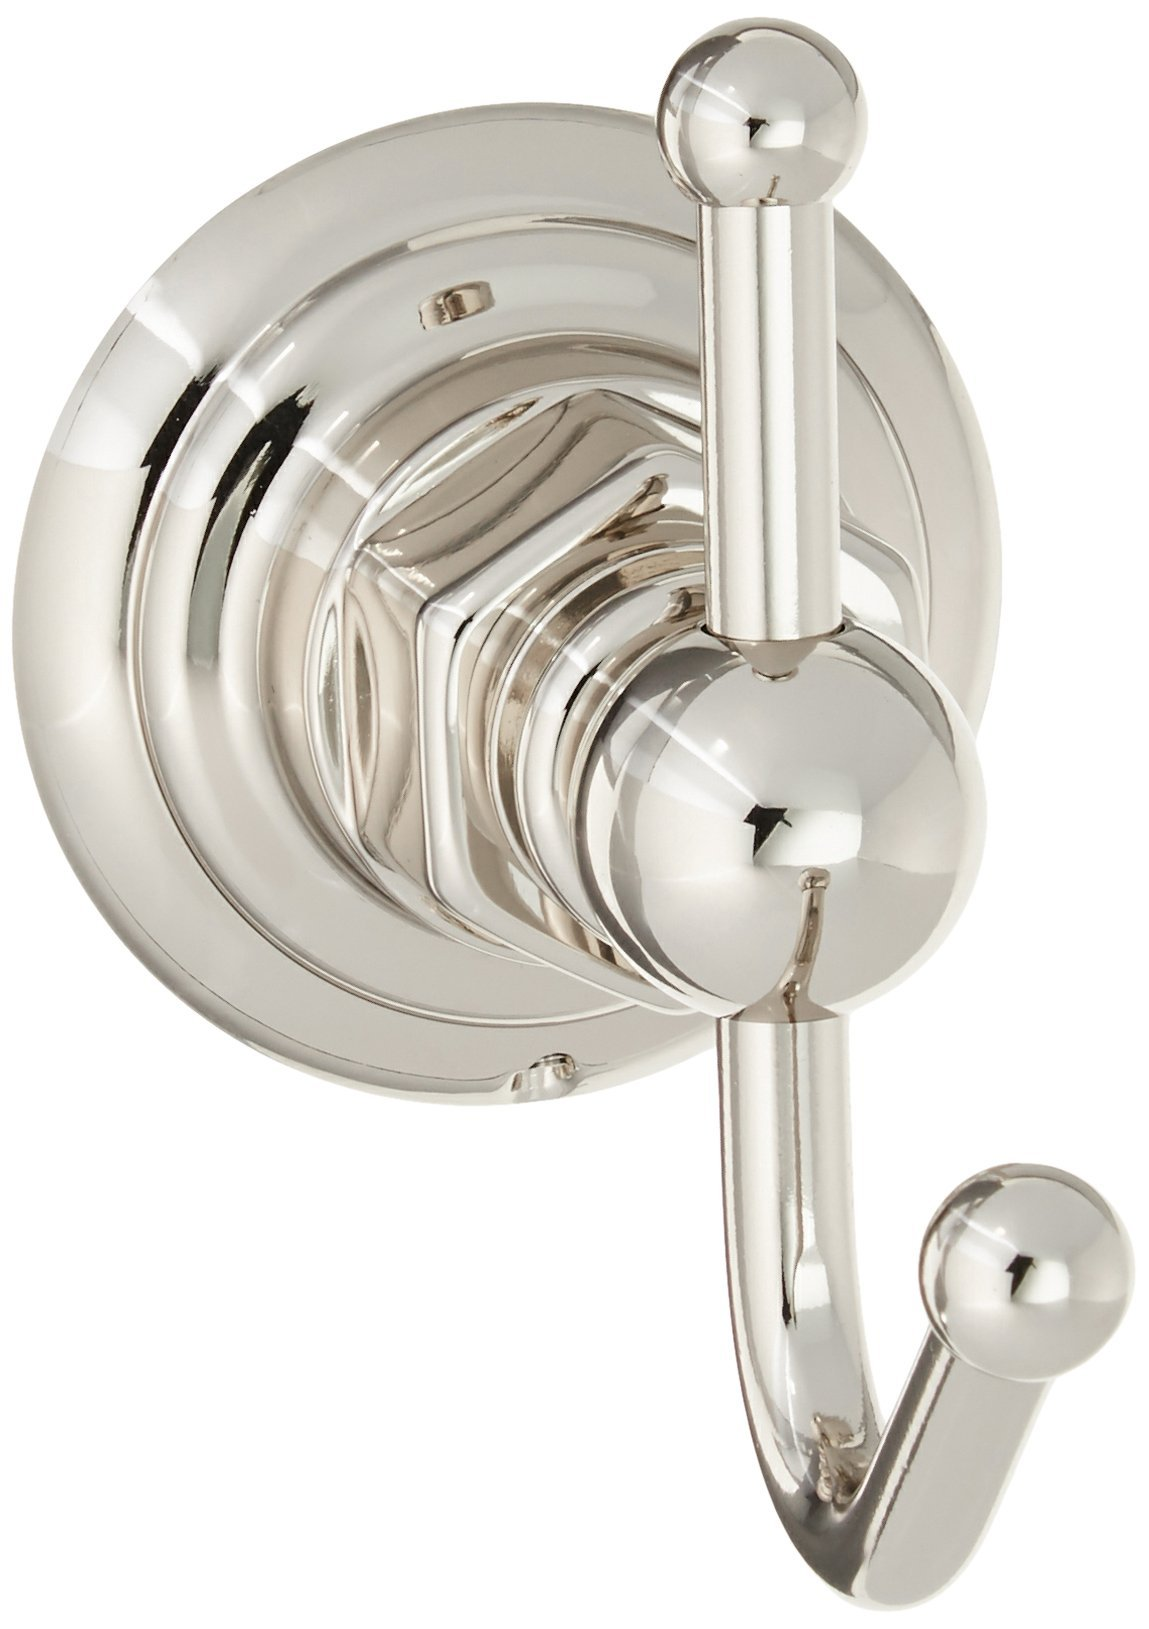 Rohl ROT7PN Country Bath Single Robe Hook in Polished Nickel